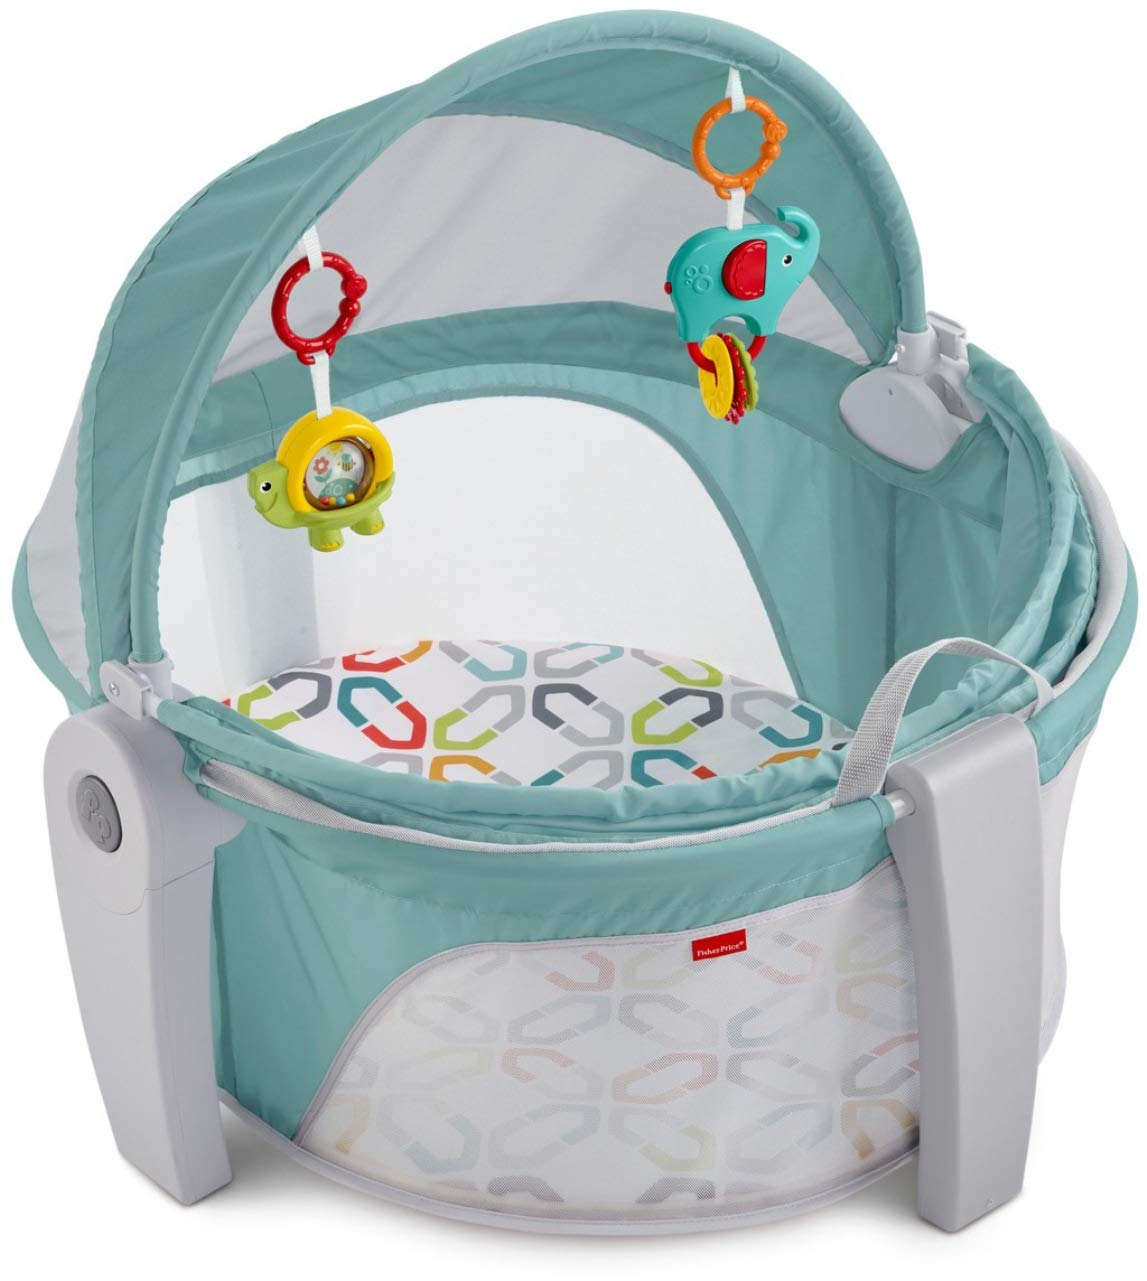 Fisher-Price On-The-Go Baby Dome Amazonca/FISNE FFR36